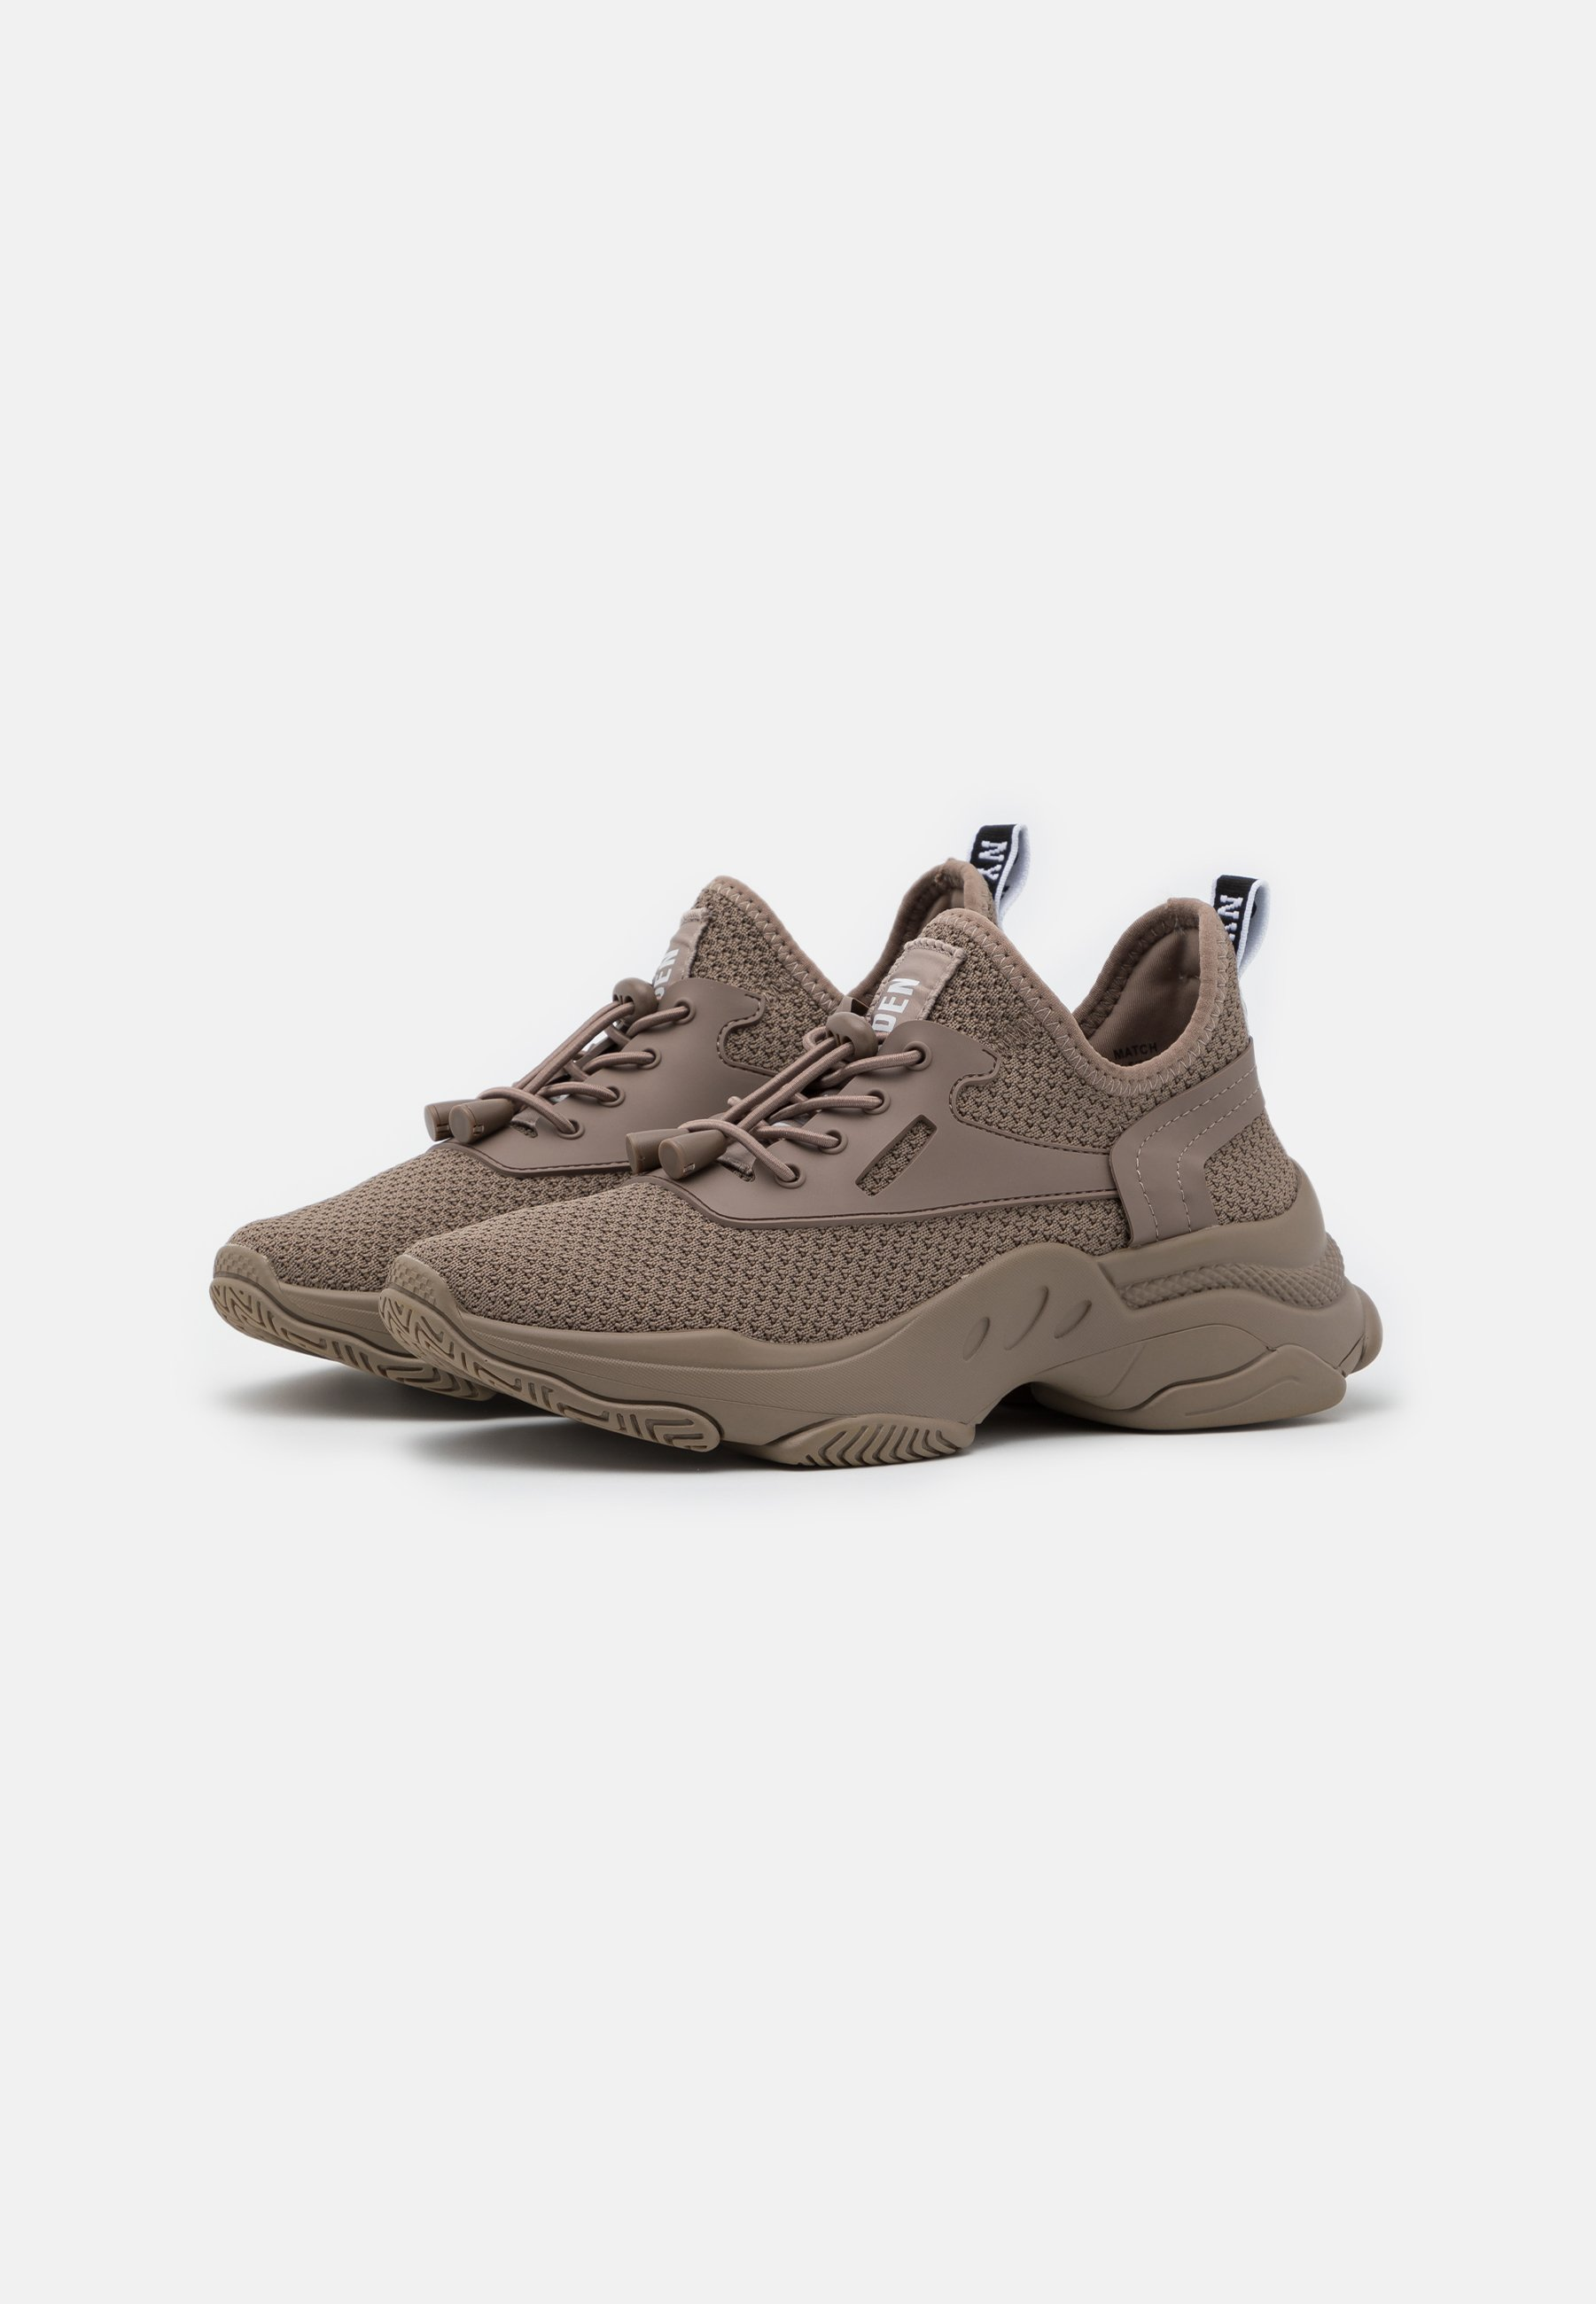 Steve Madden MATCH Sneaker low dark taupe/taupe